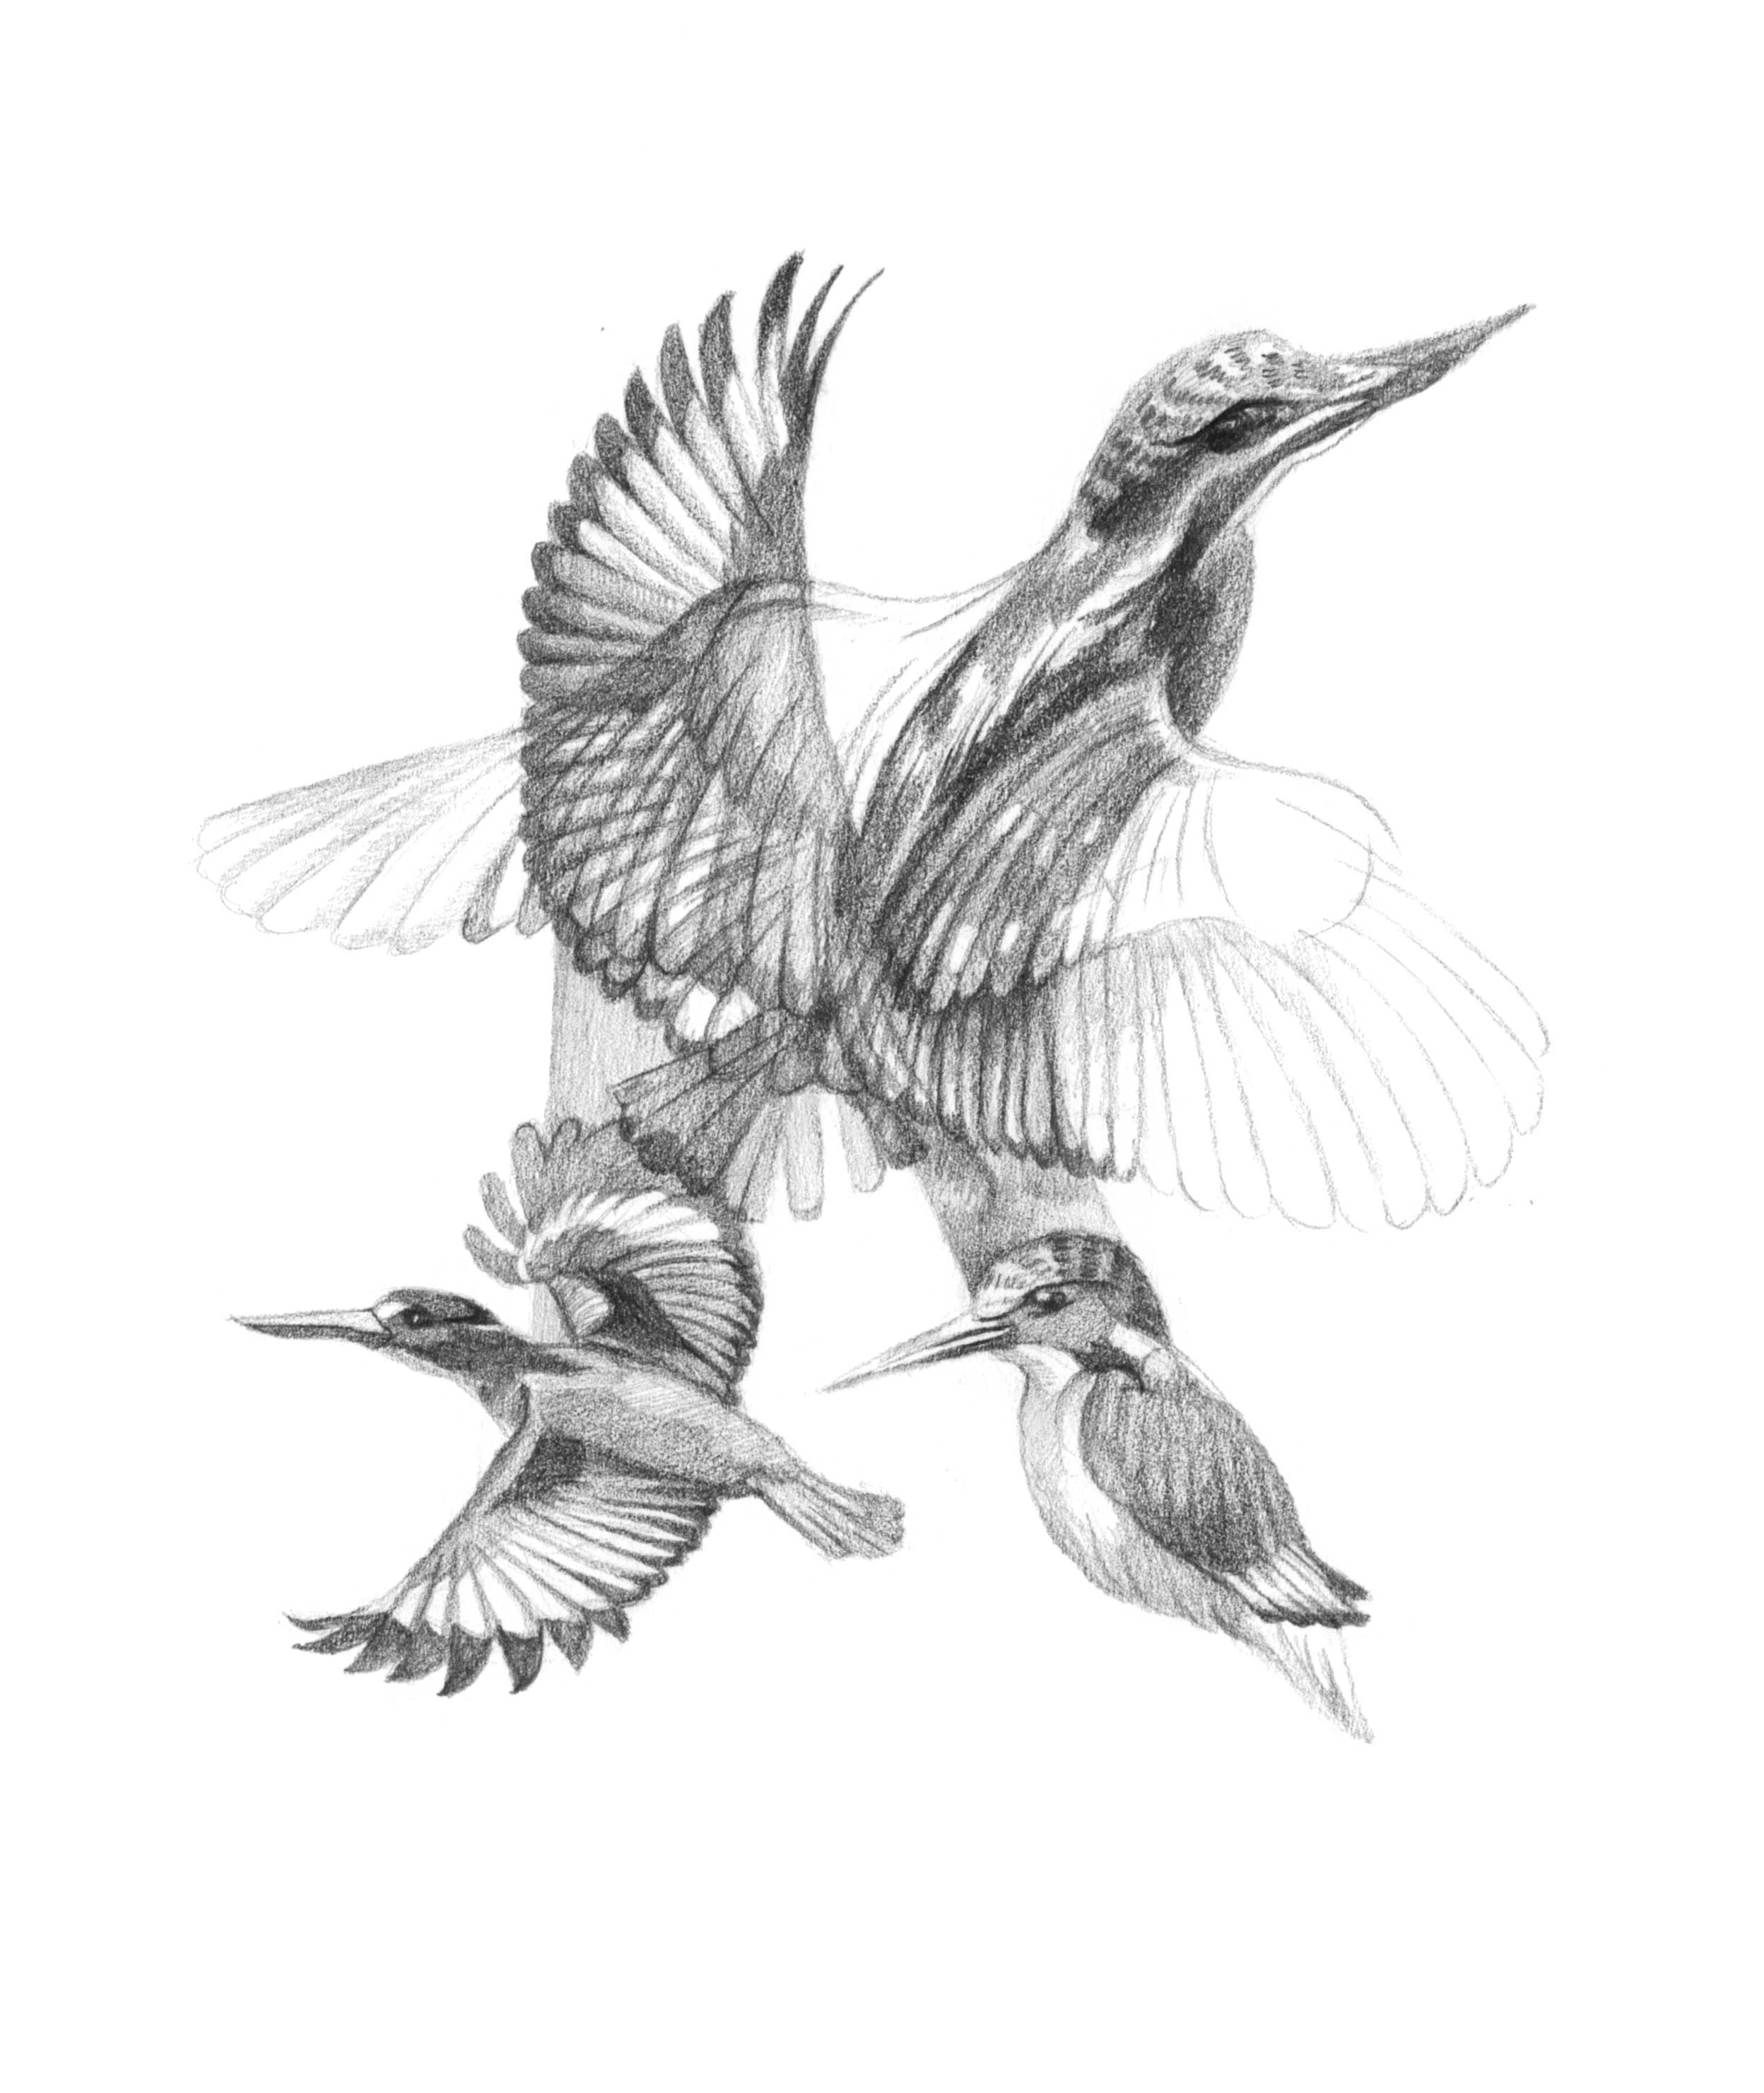 K-is-for-kingfisher.jpg